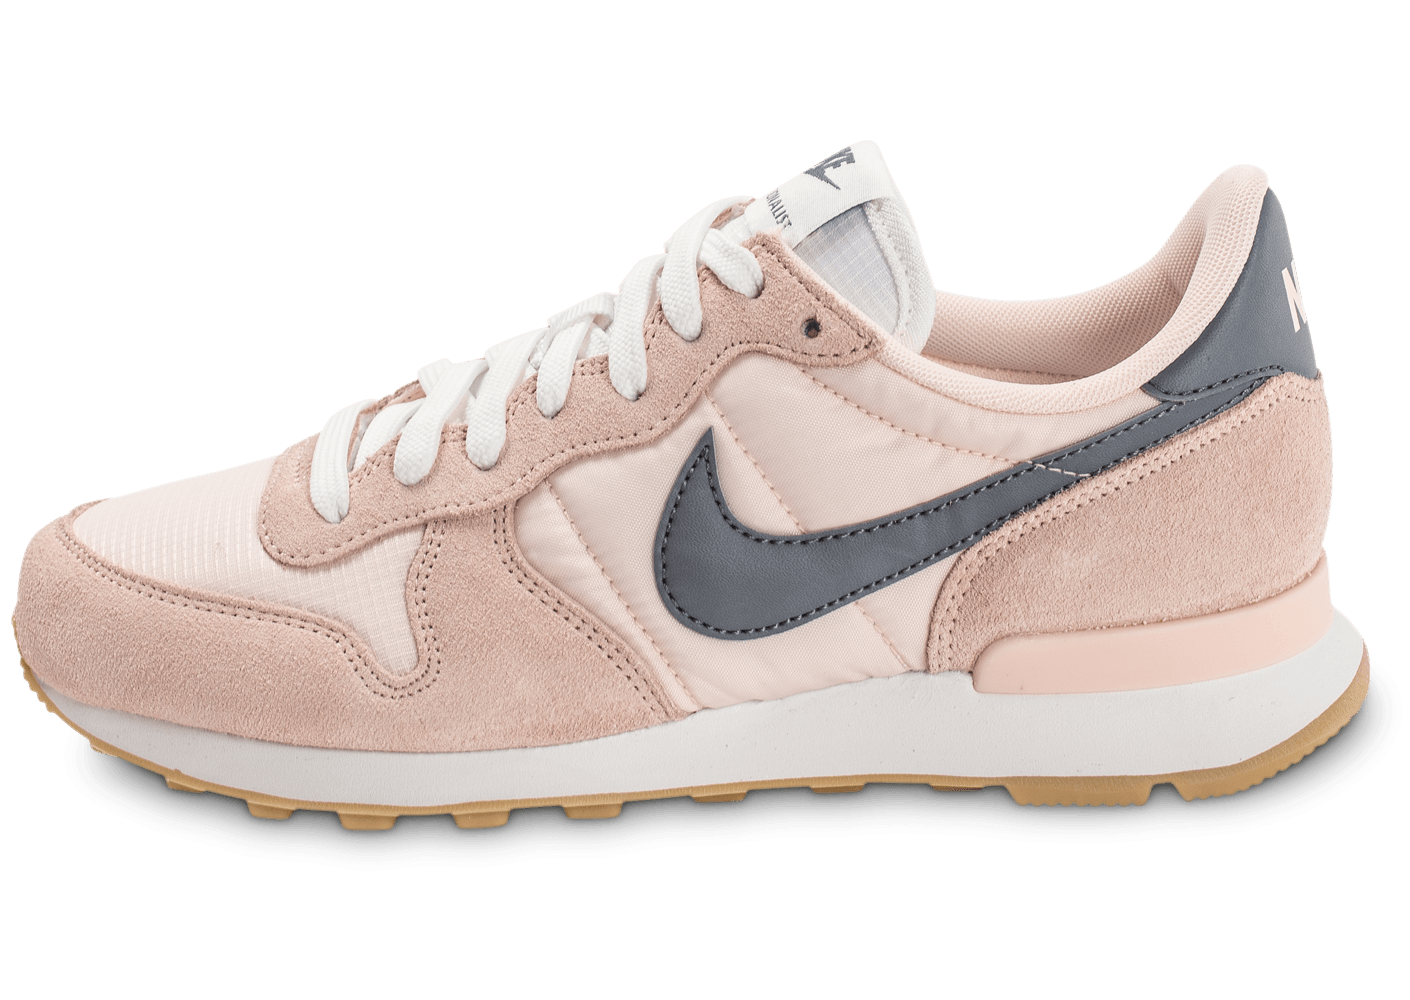 nike internationalist w chaussures blanc beige gris